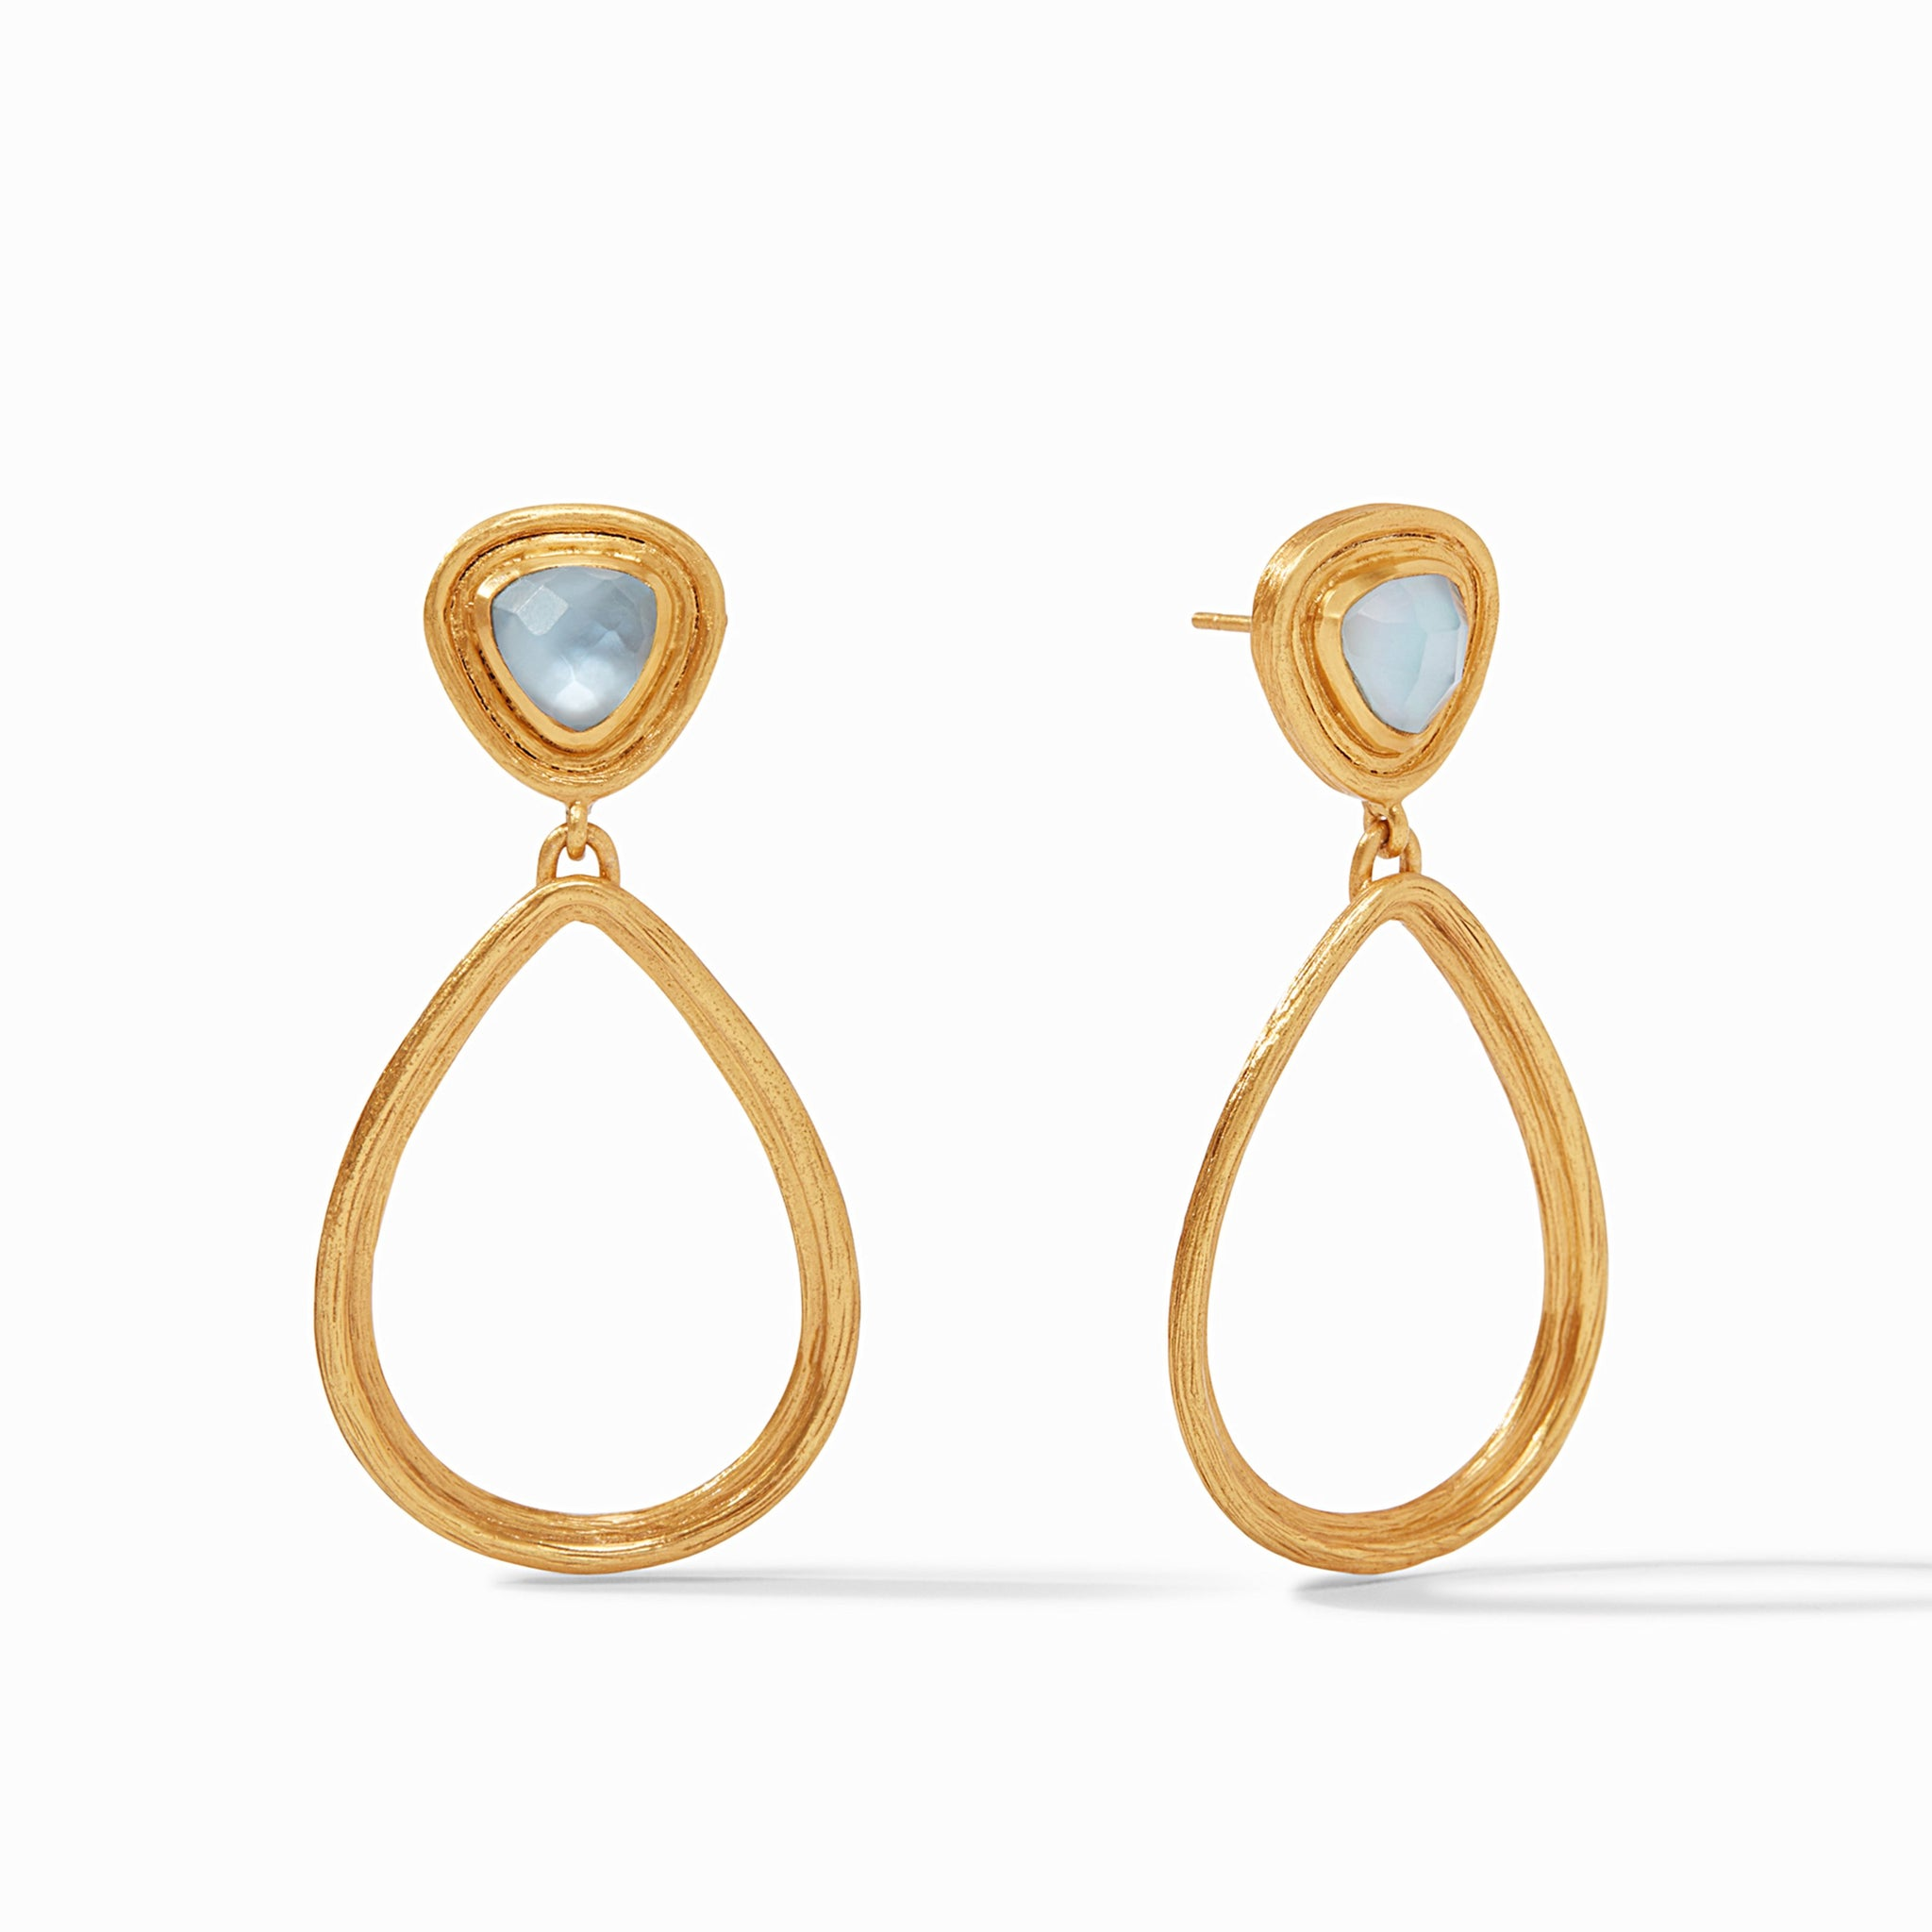 Iridescent Chalcedony Blue, irresistibly iridescent, classics, summertime 2020